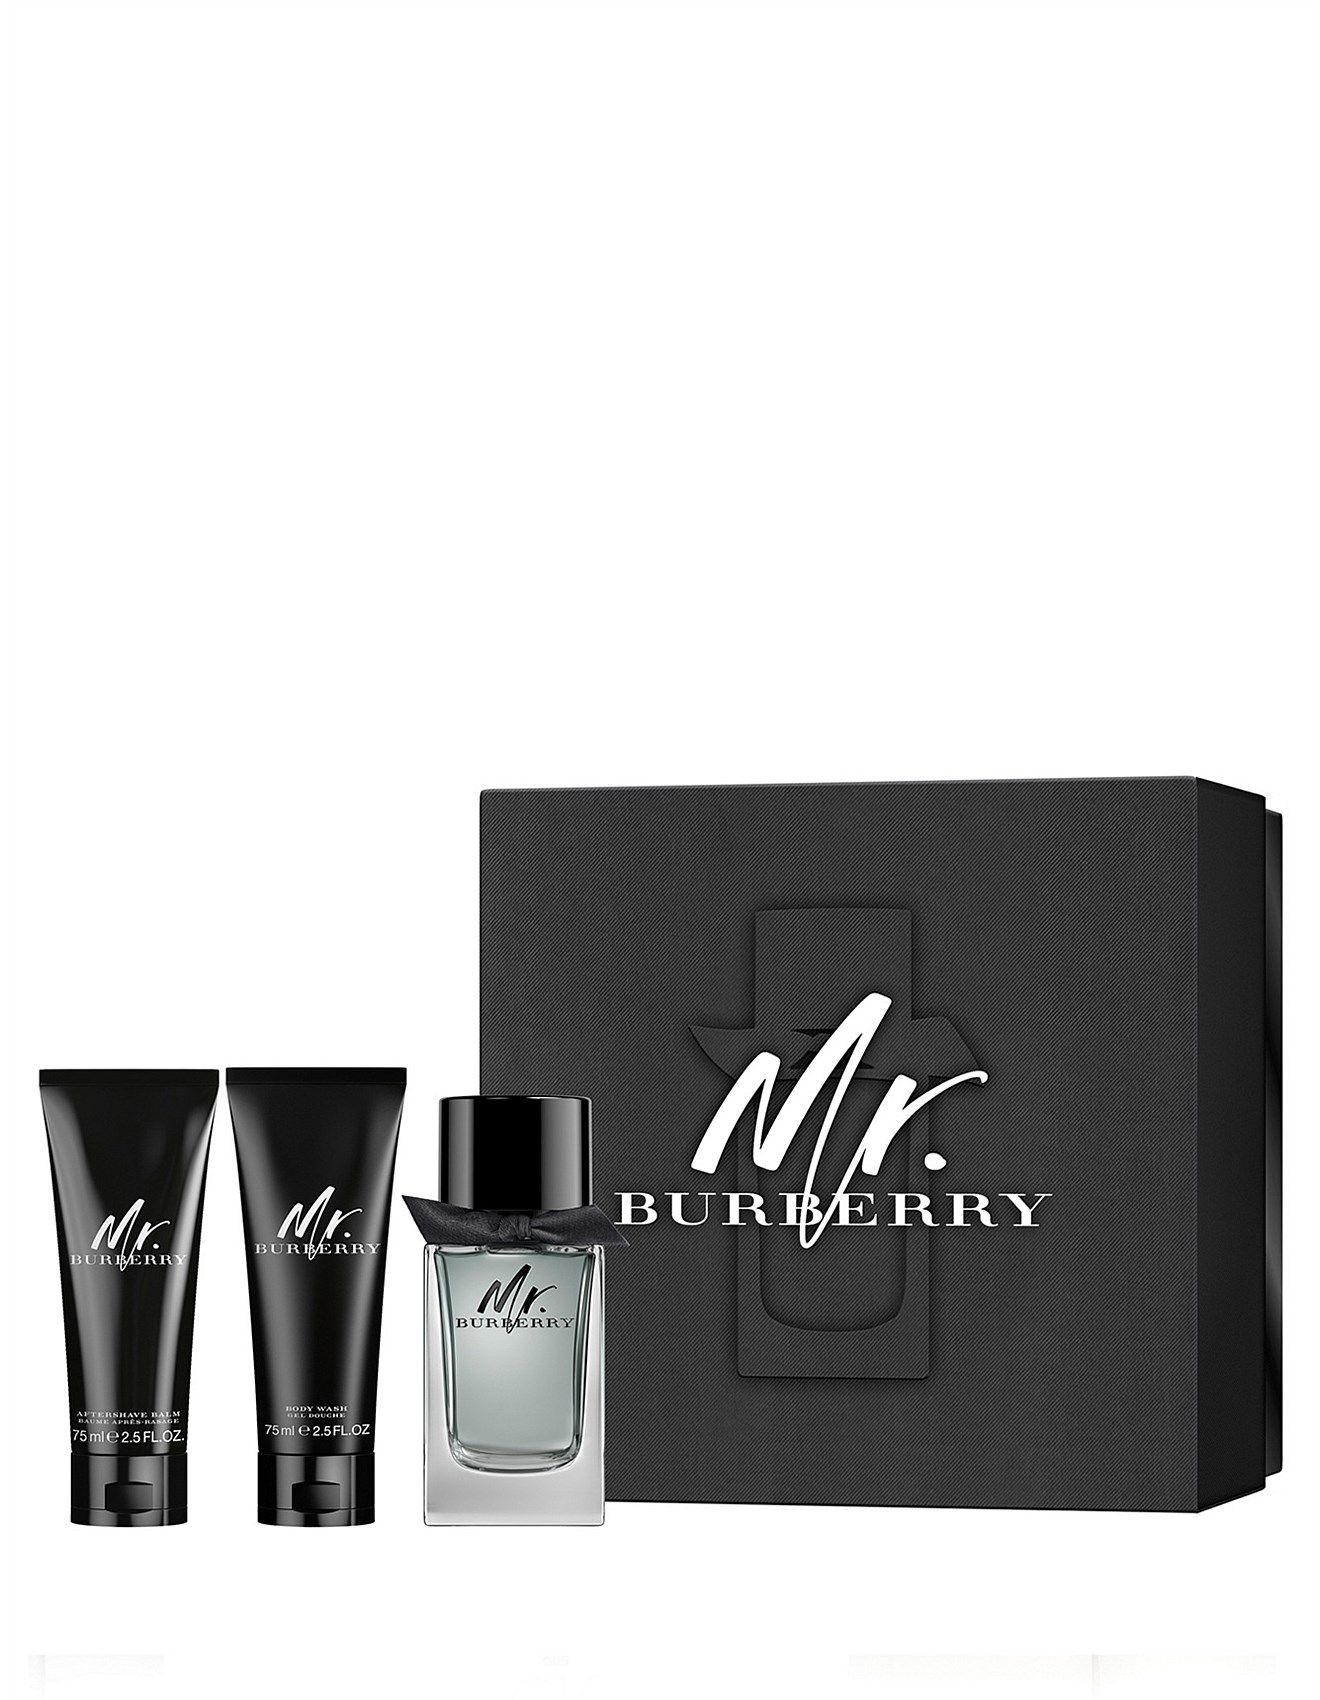 aae1a5178cd Burberry Mr. Burberry EDT Limited Edition Gift Set